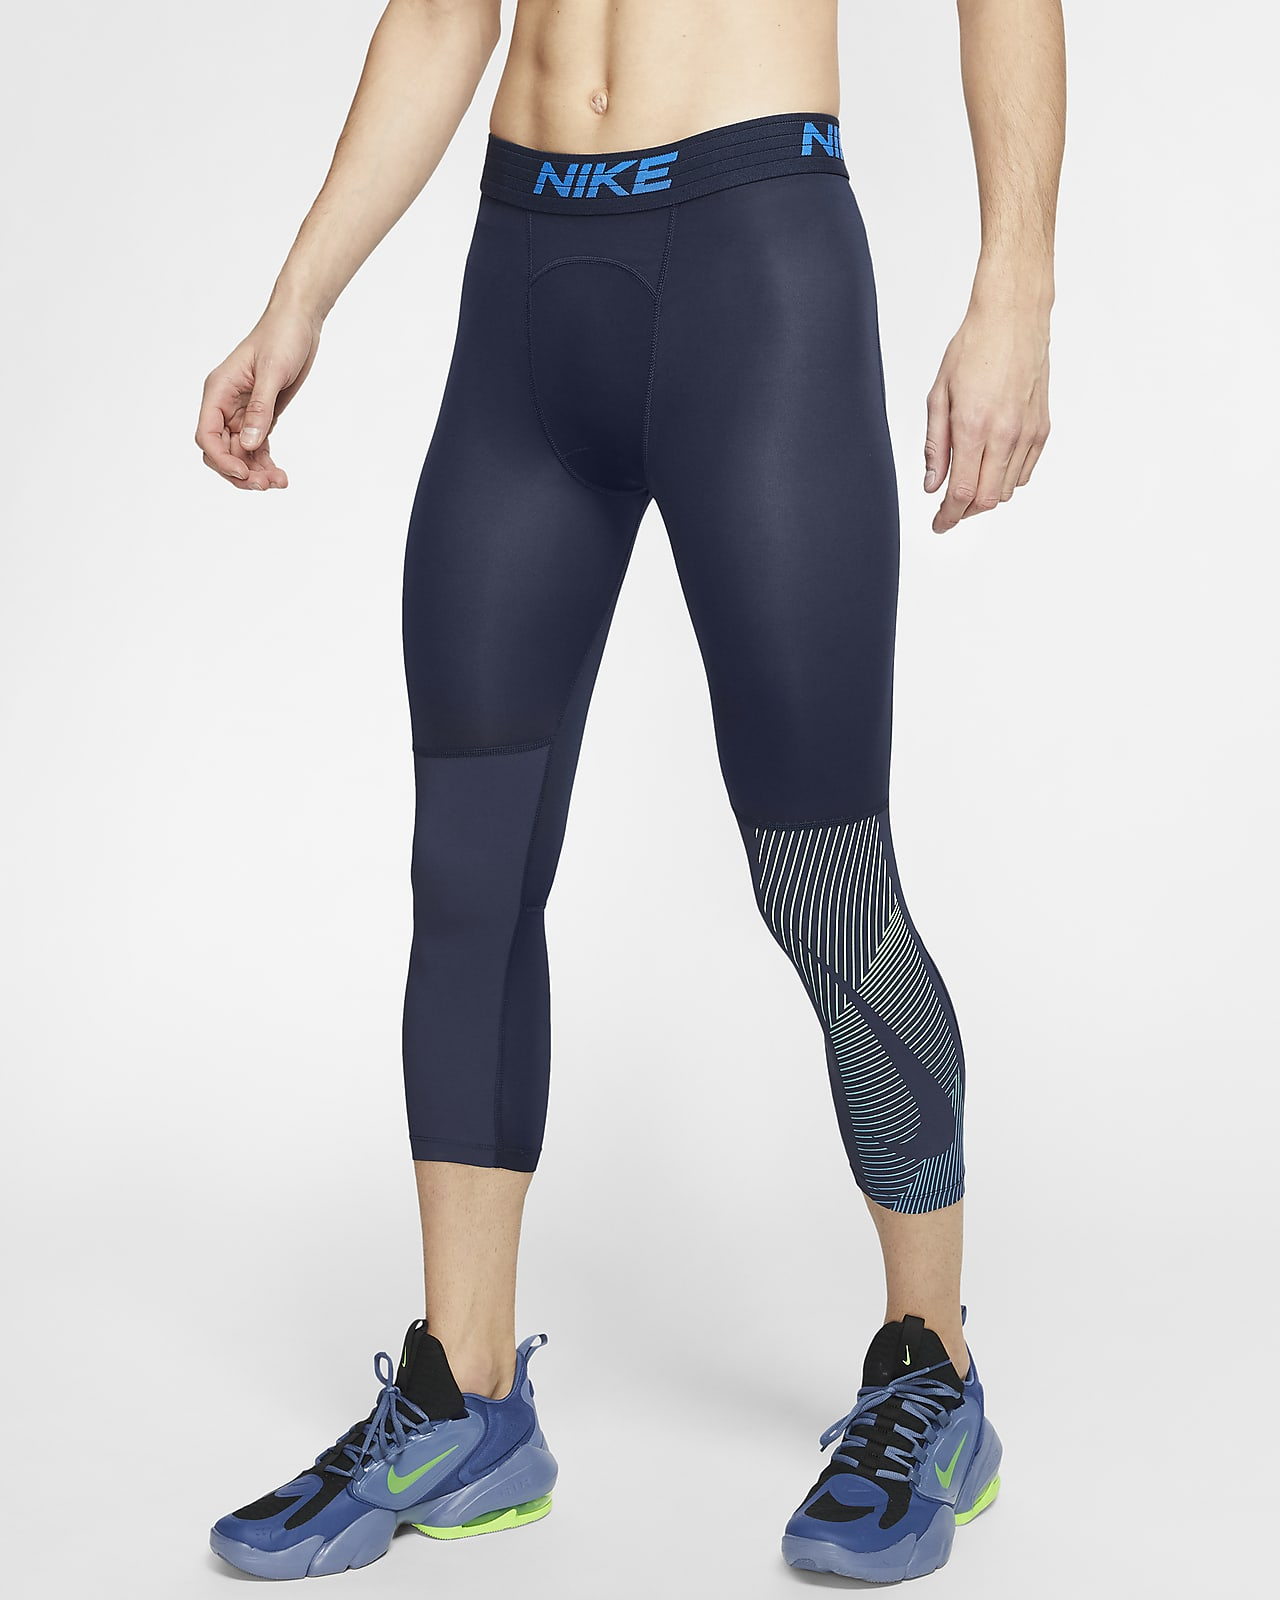 Nike Men's 3/4 Training Tights